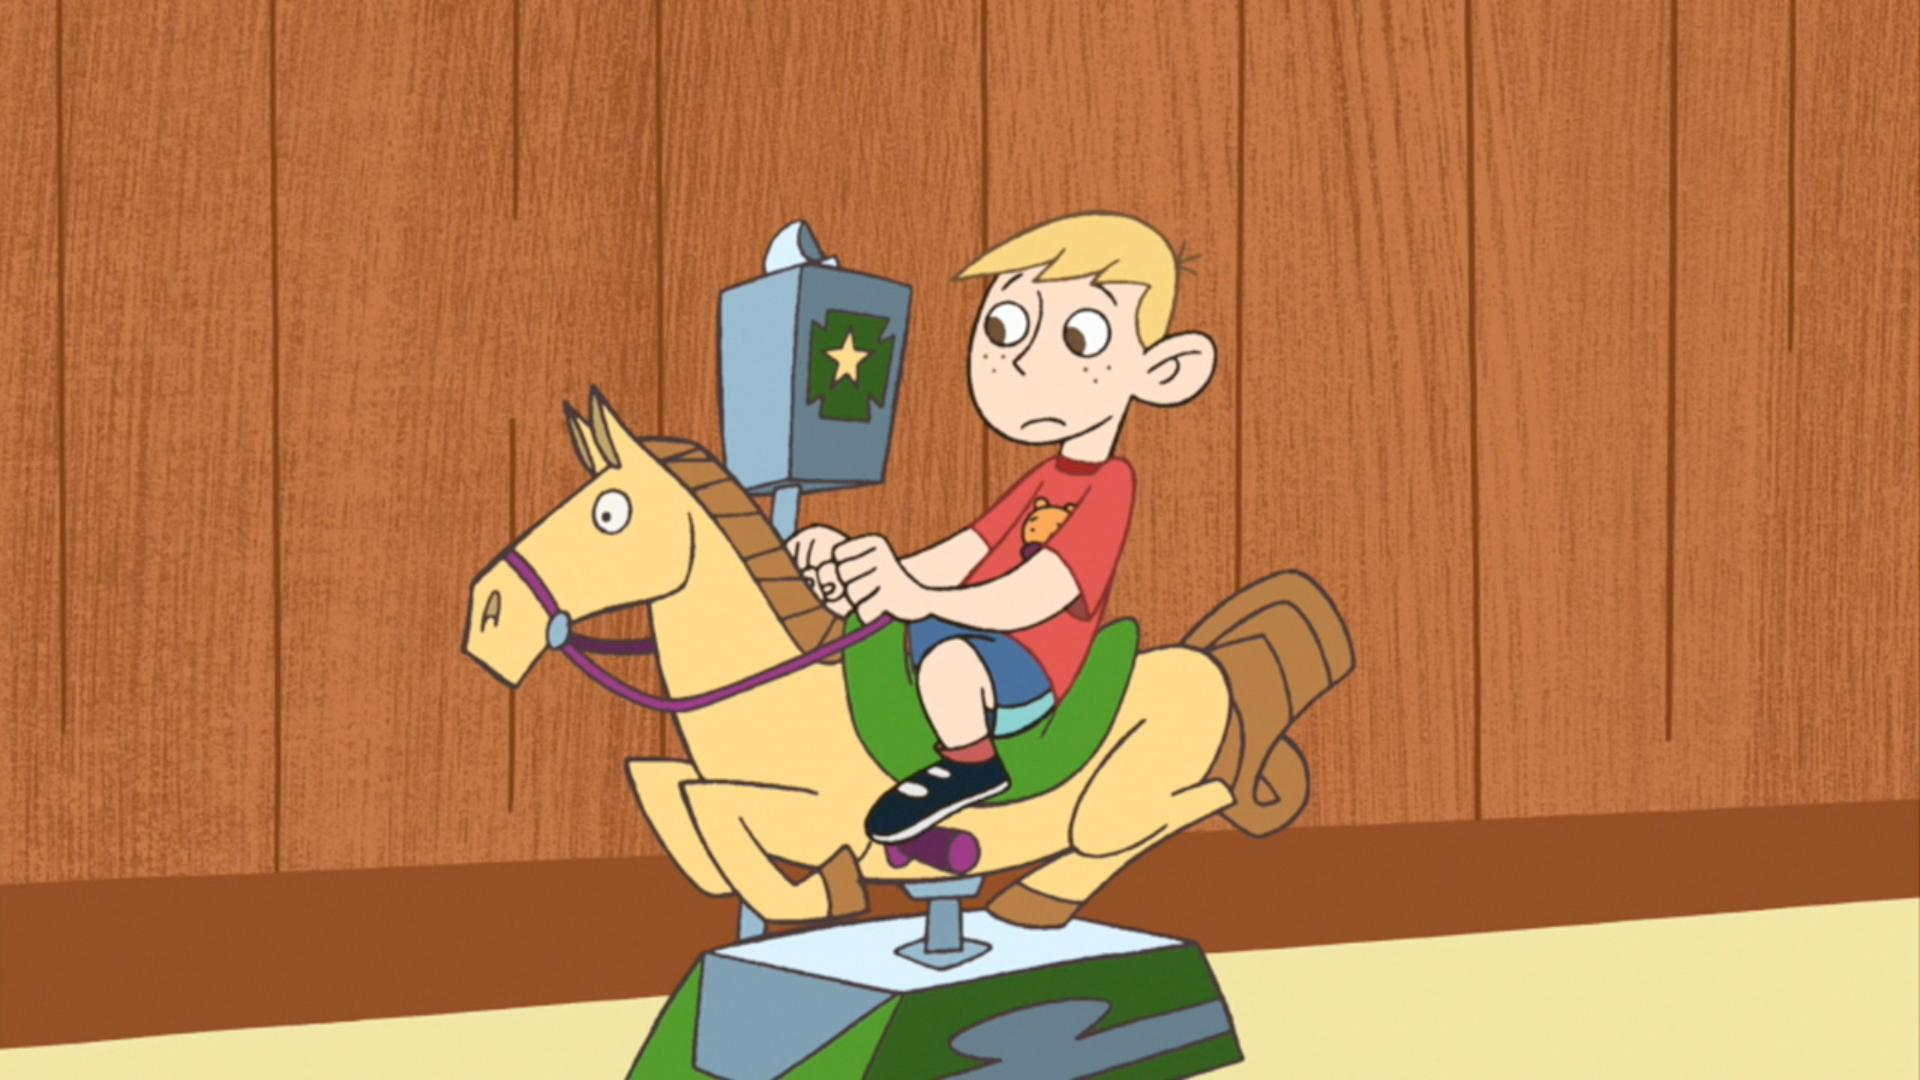 File:Little Ron Riding a Horse.jpg